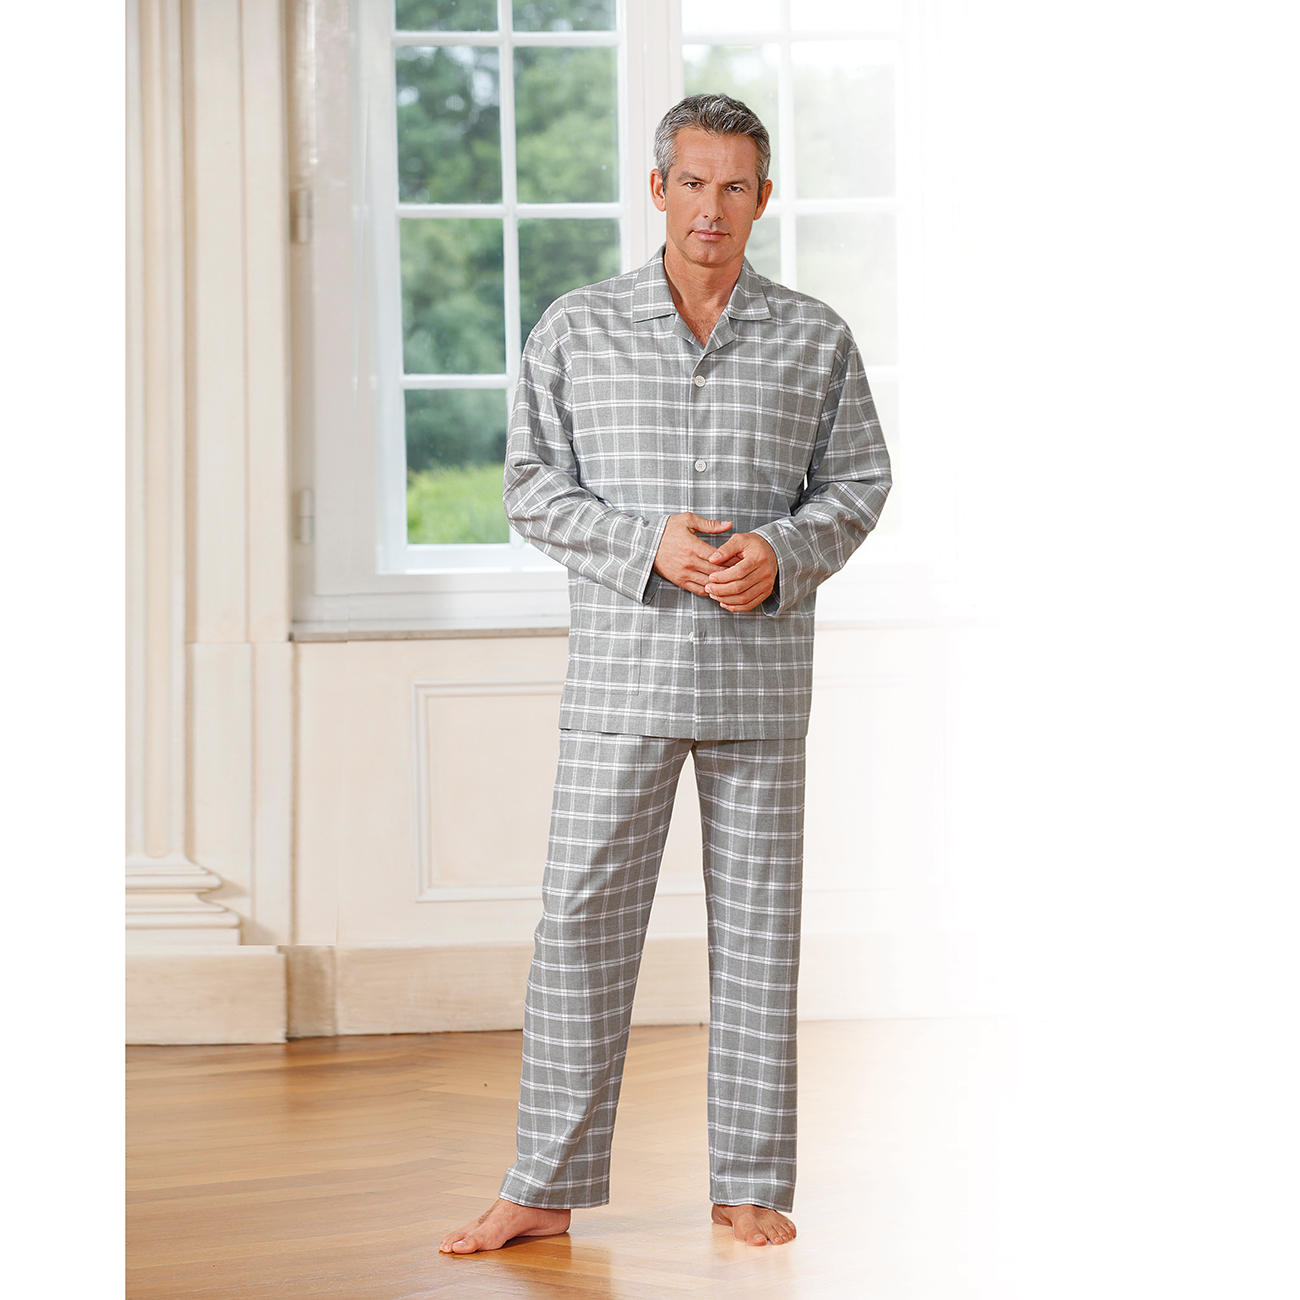 pyjama en flanelle novila garantie produit de 3 ans. Black Bedroom Furniture Sets. Home Design Ideas